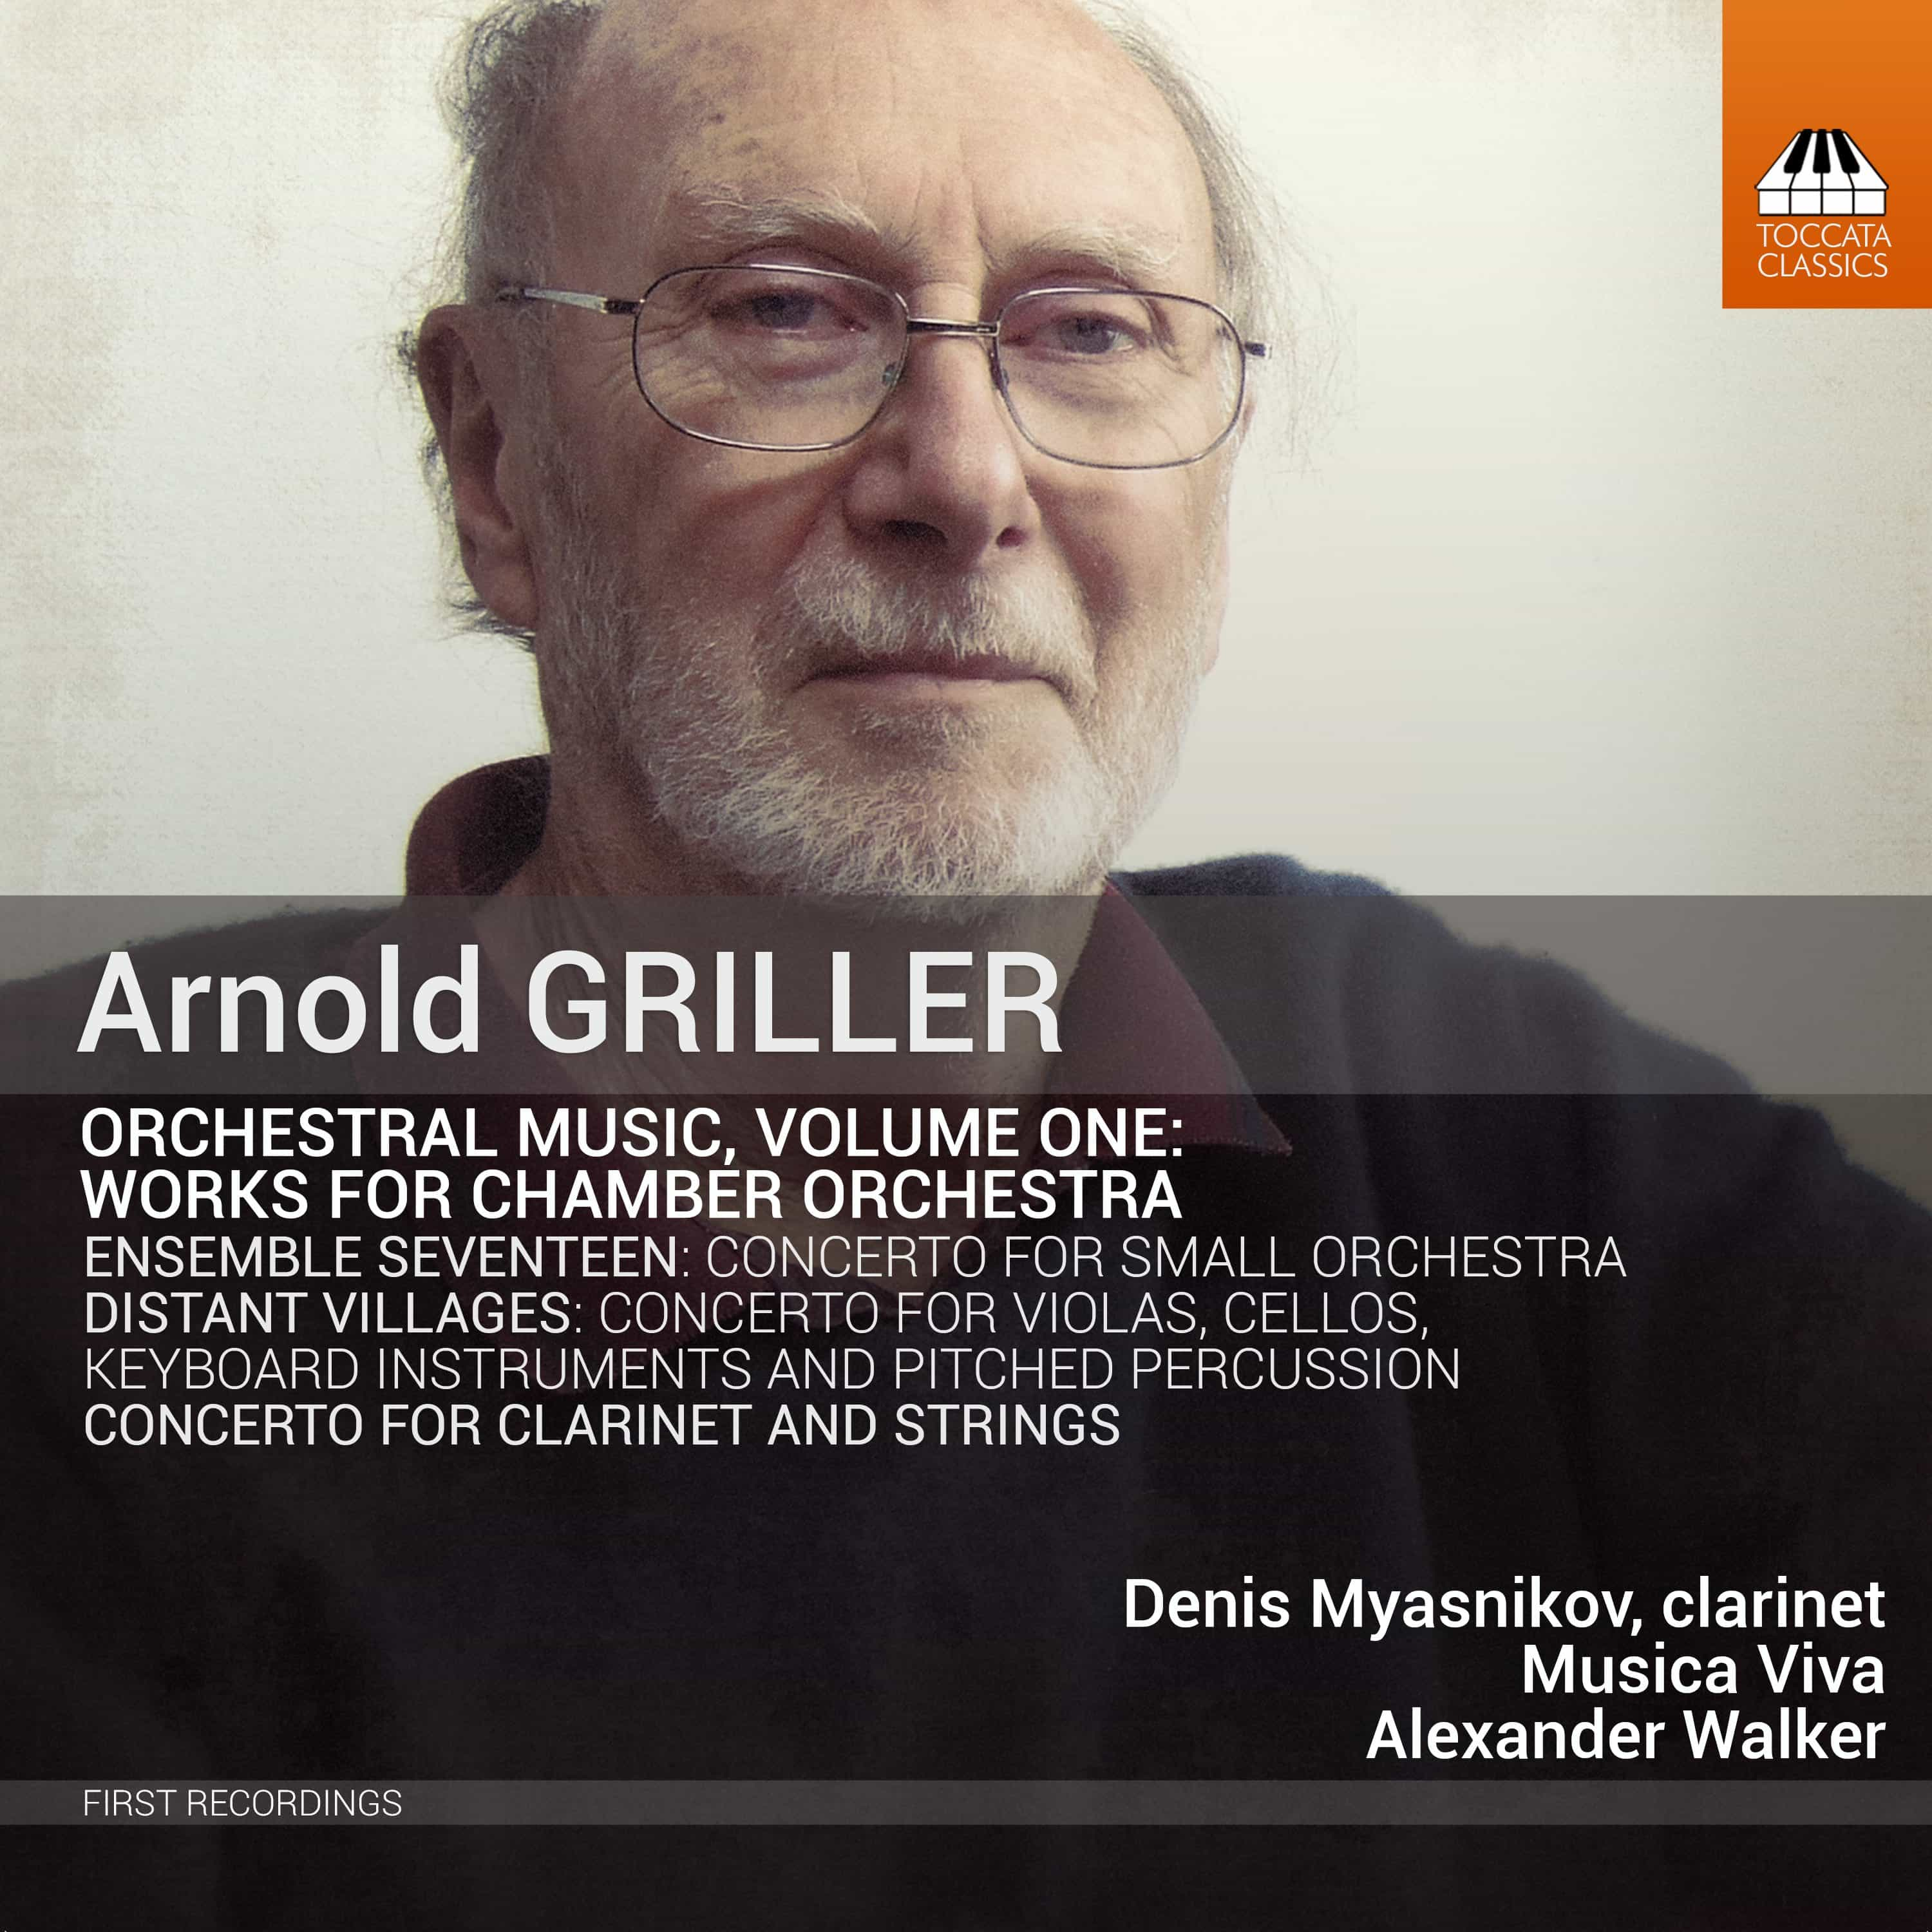 Arnold Griller: Orchestral Music, Volume One